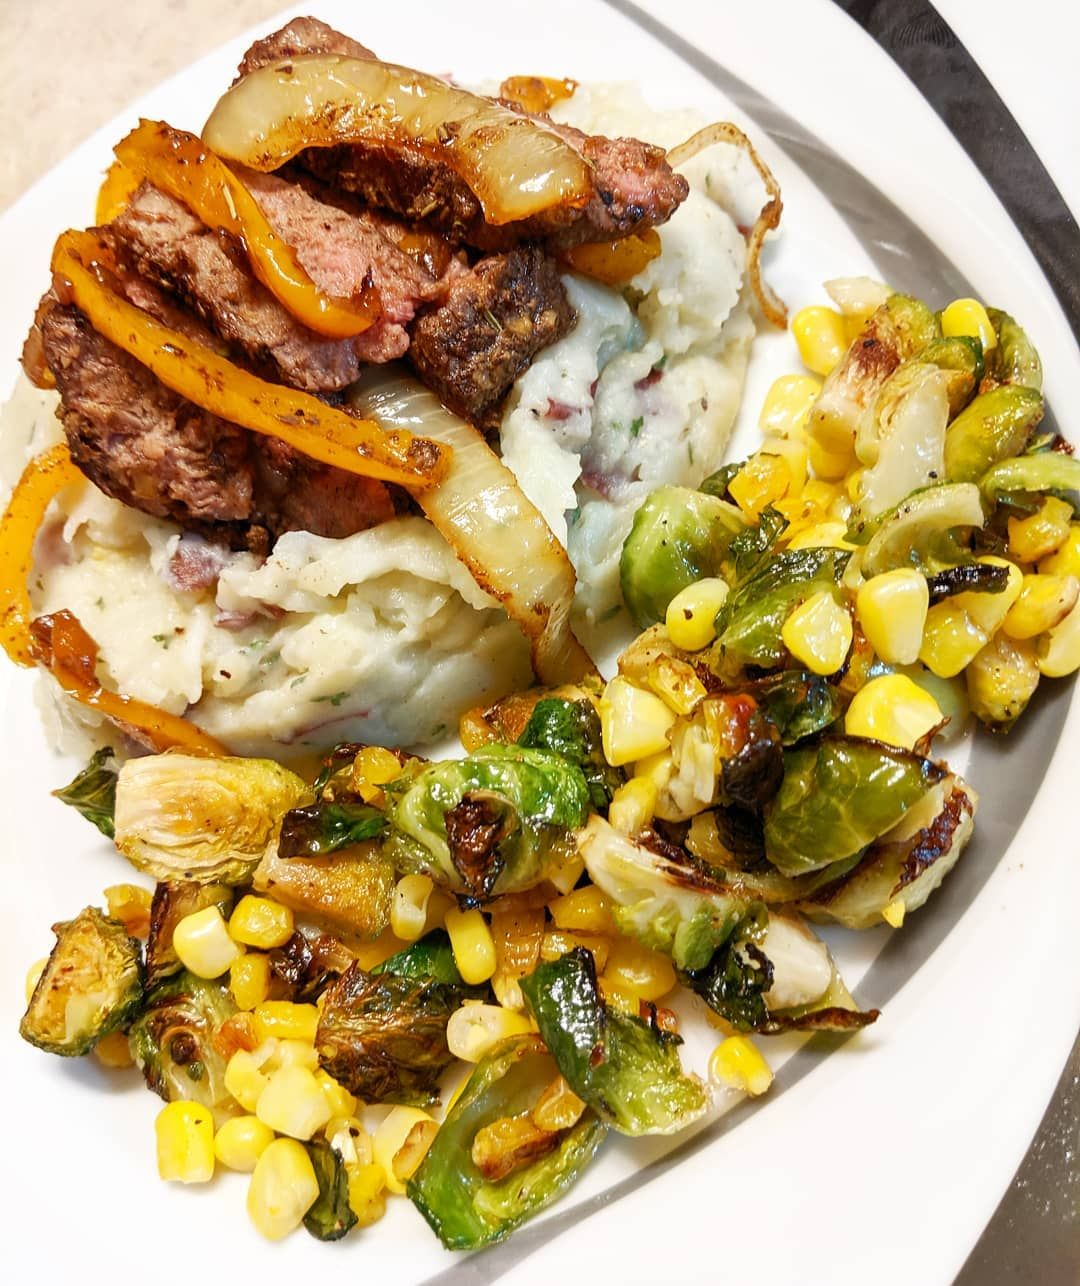 Tender steak on smashed red potatoes with a side of roasted brussel sprouts and corn #smashedbrusselsprouts